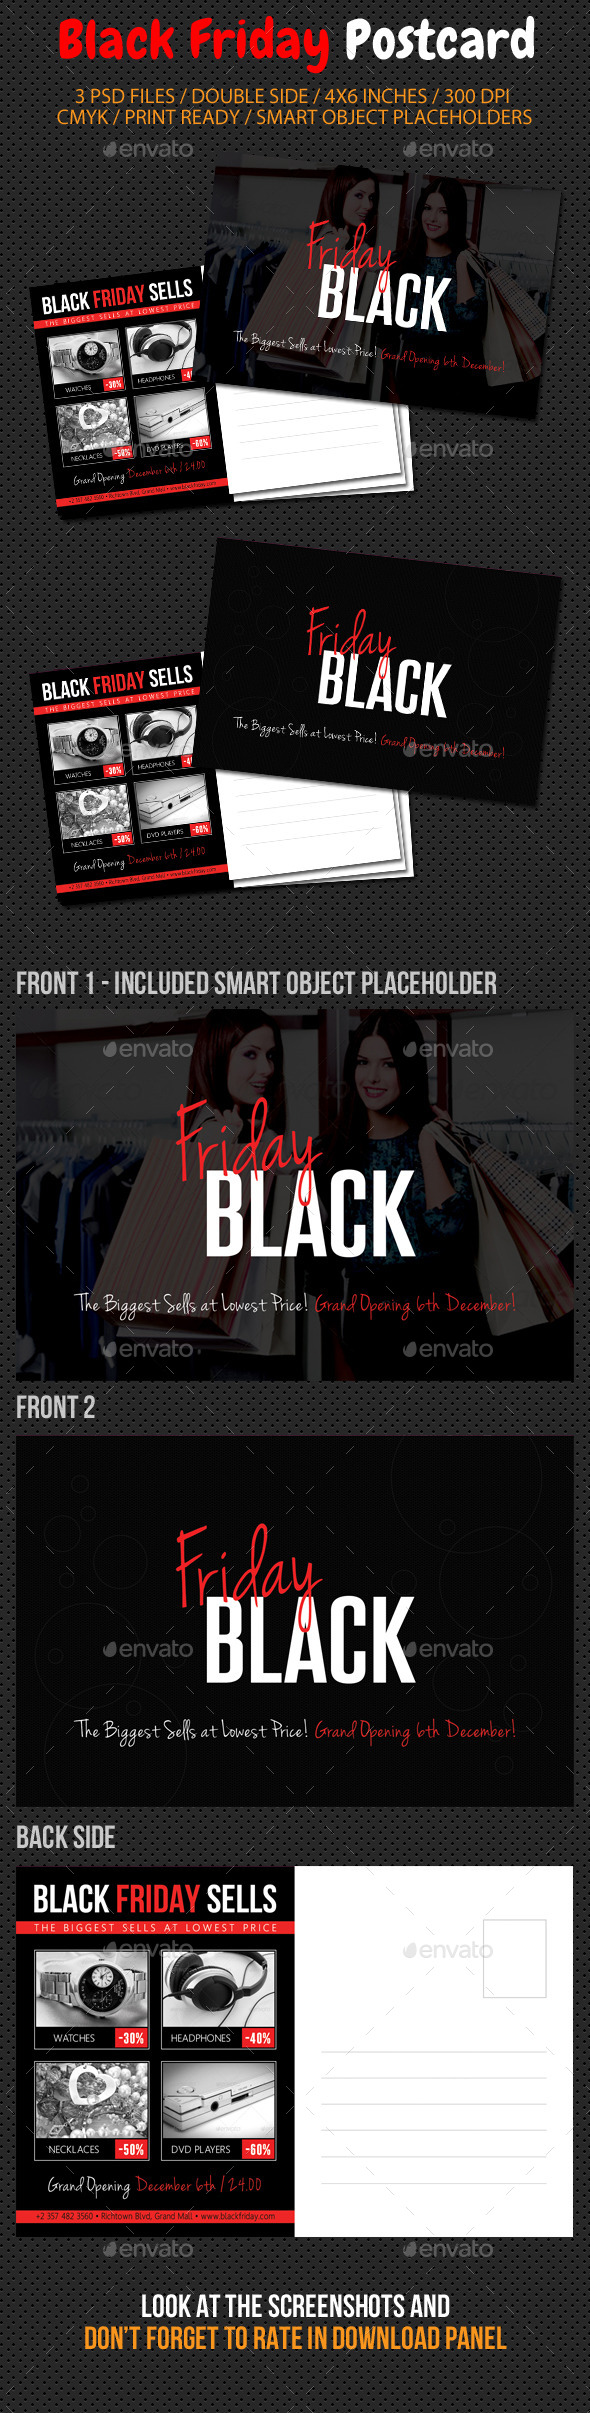 Black Friday Postcard Template V01 - Cards & Invites Print Templates